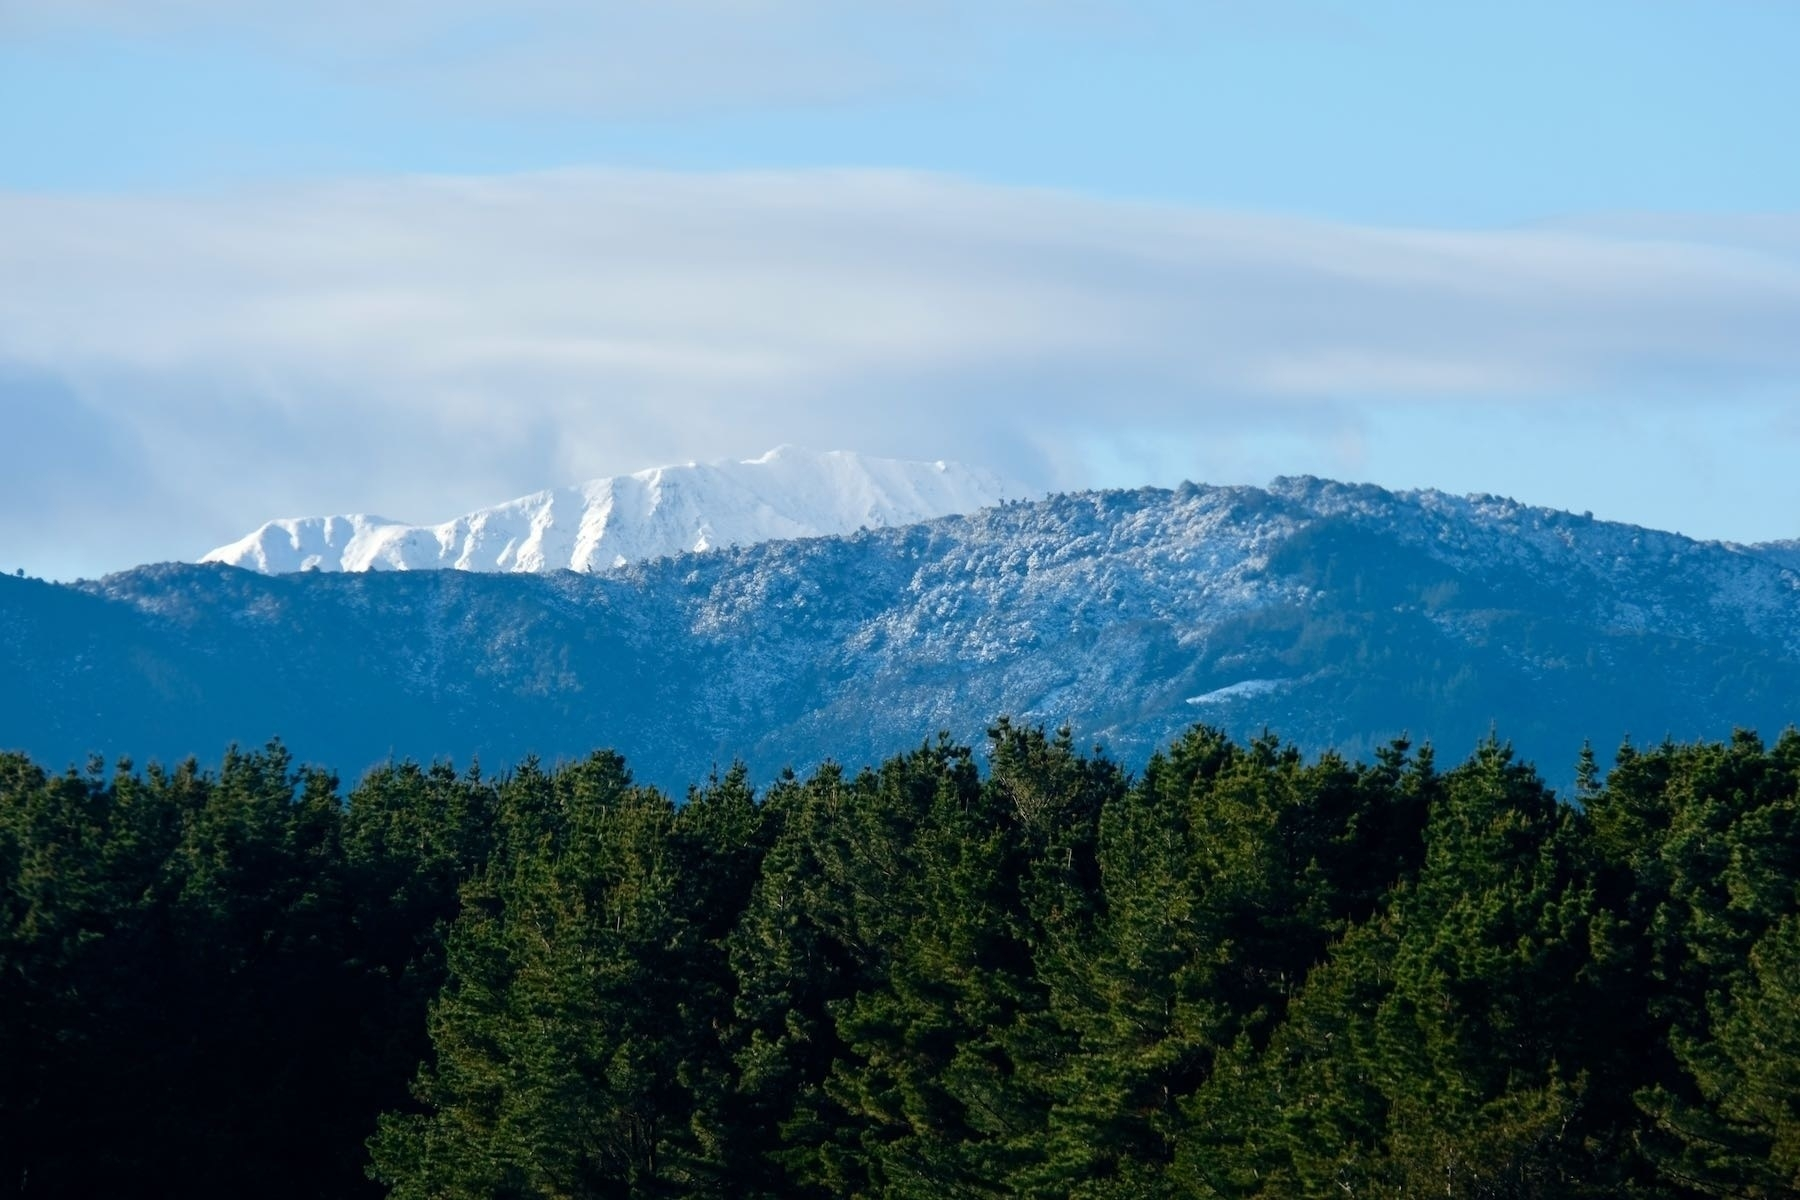 Snowy peak and foothills above trees.